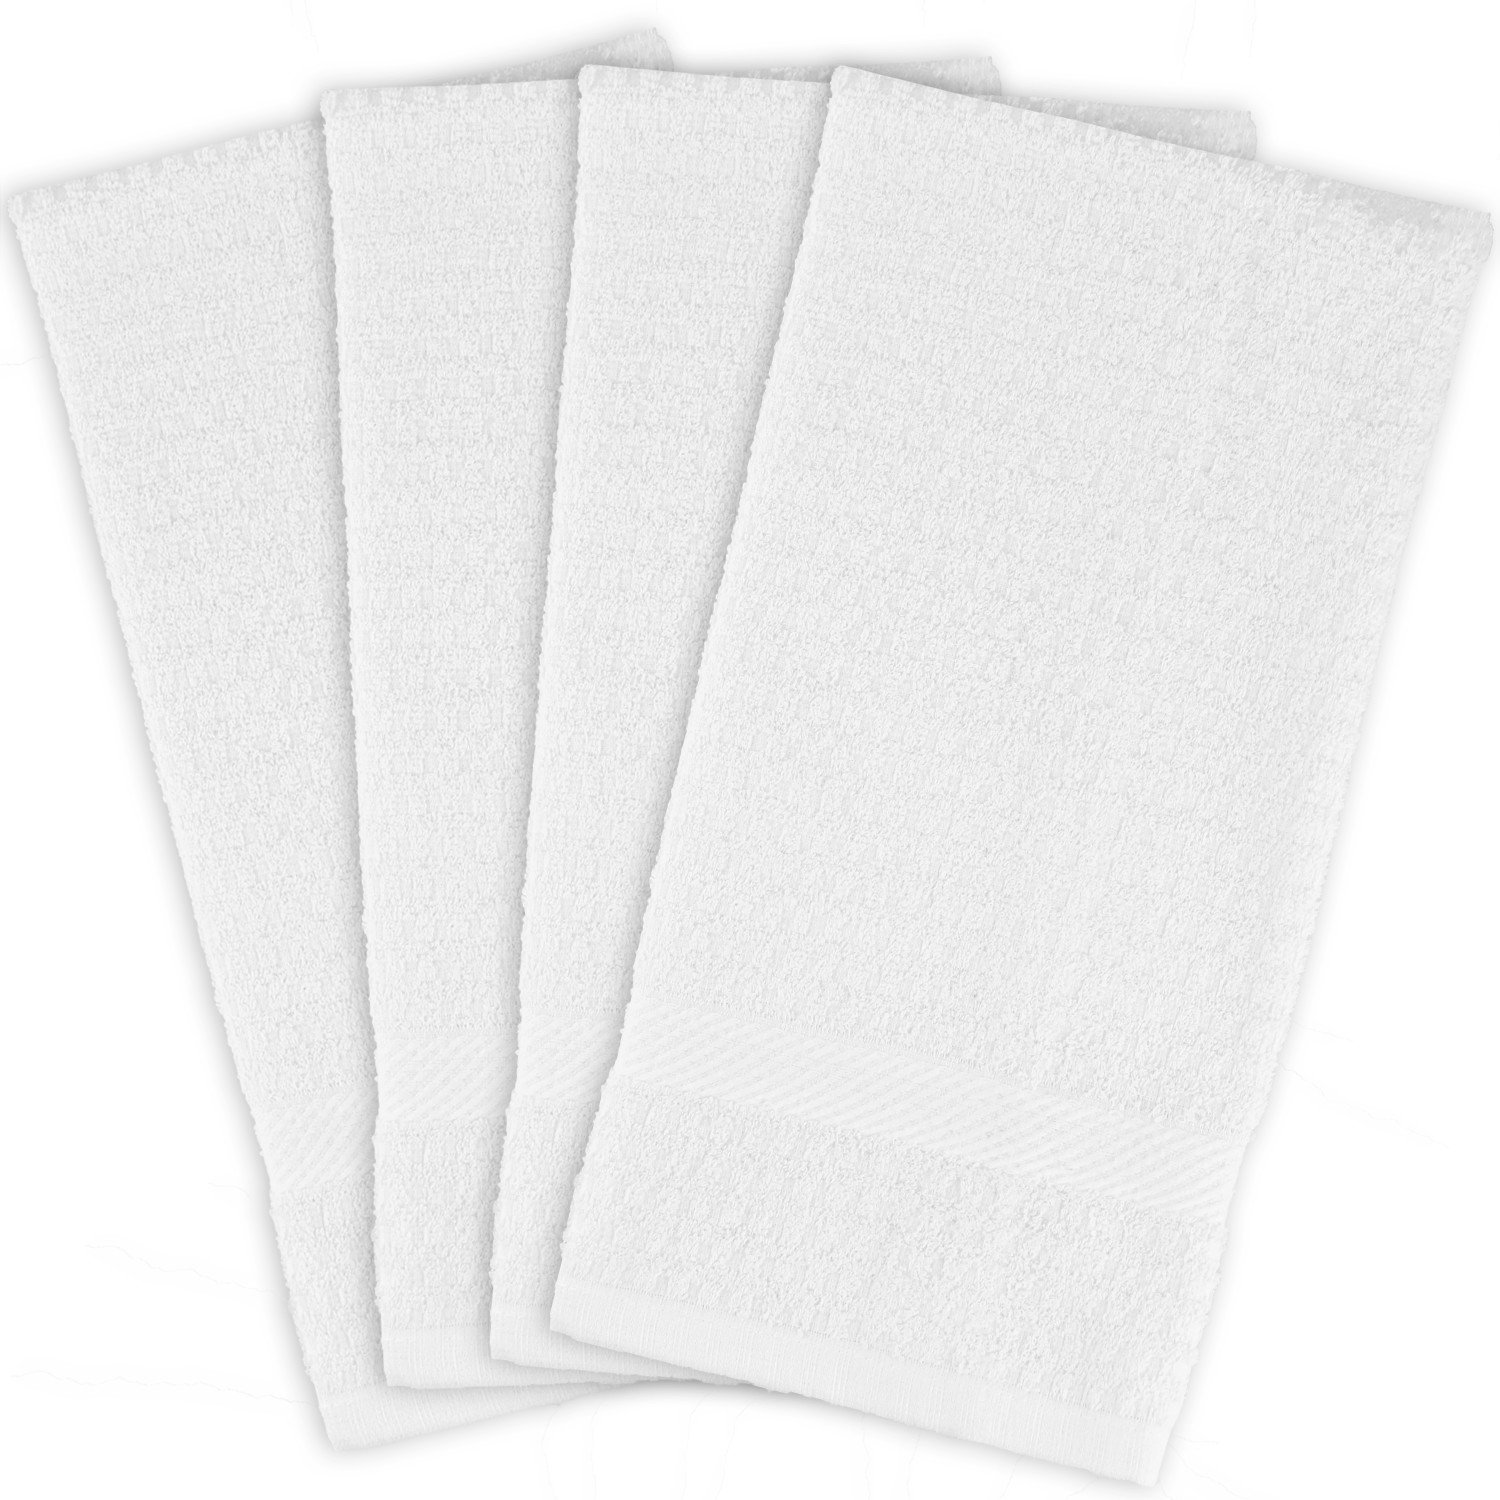 "DII Cotton Waffle Terry Dish Towels, 15 x 26"" Set of 4, Ultra Absorbent, Heavy Duty, Drying & Cleaning Kitchen Towels-White"